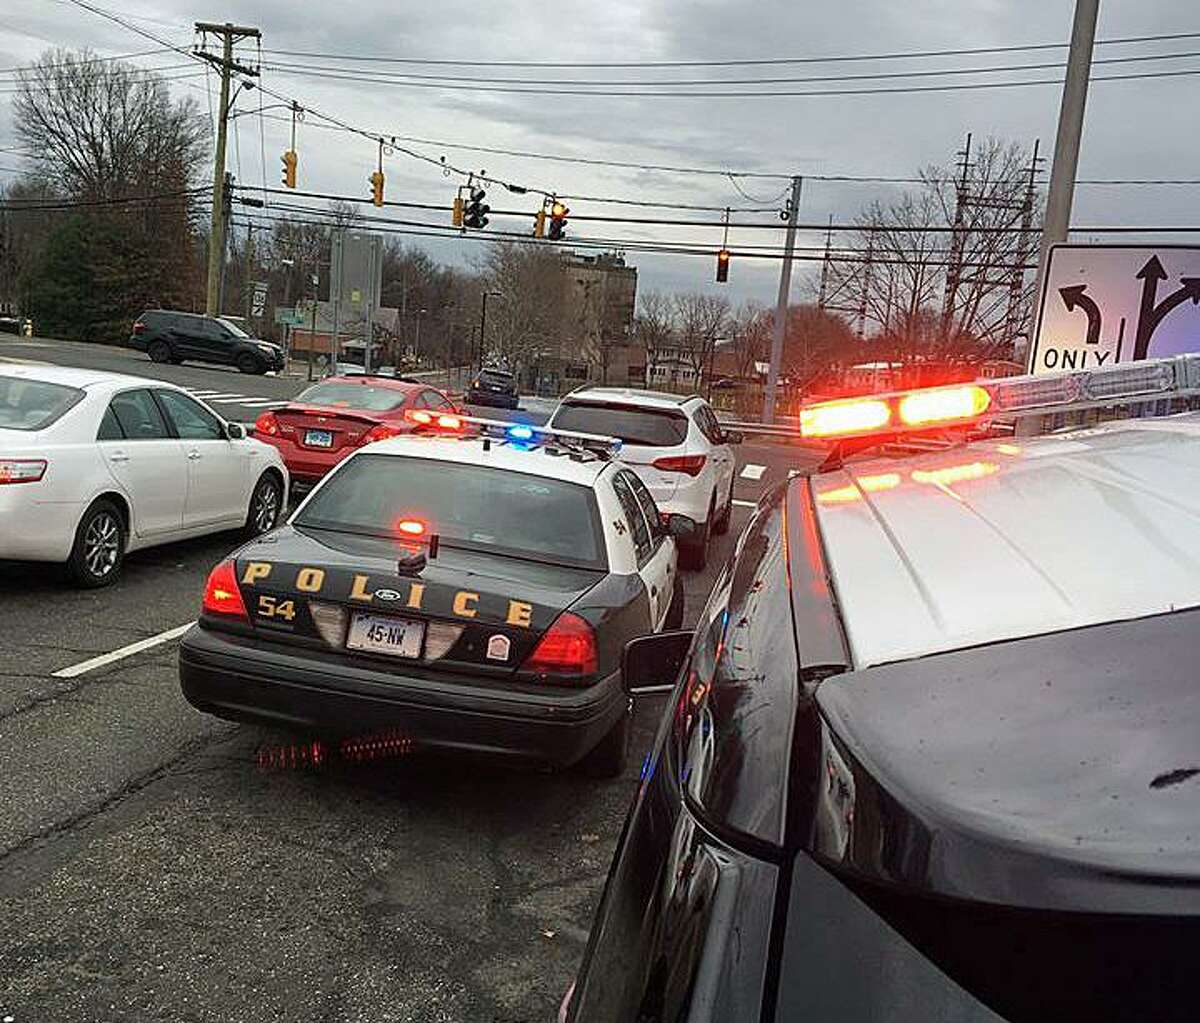 Norwalk police on the scene after the driver of a stolen car was stopped in Westport on Monday, Jan. 2, 2017. Police say a running car was stolen by two juveniles on Woodward Avenue at 8:53 a.m.